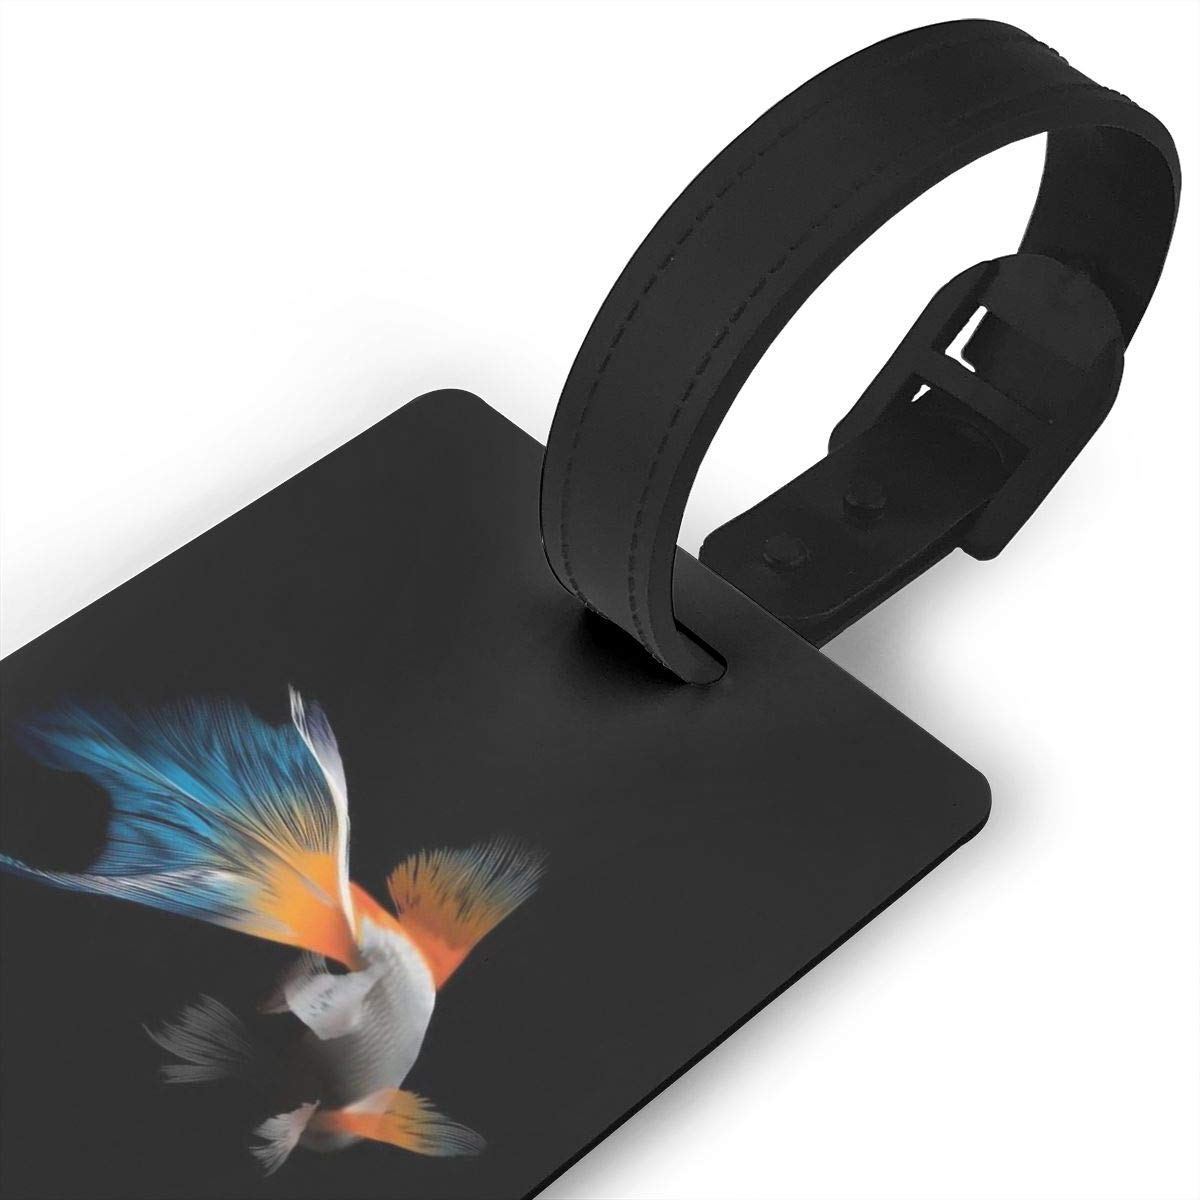 Betta Fish Cruise Luggage Tag For Travel Tags Accessories 2 Pack Luggage Tags